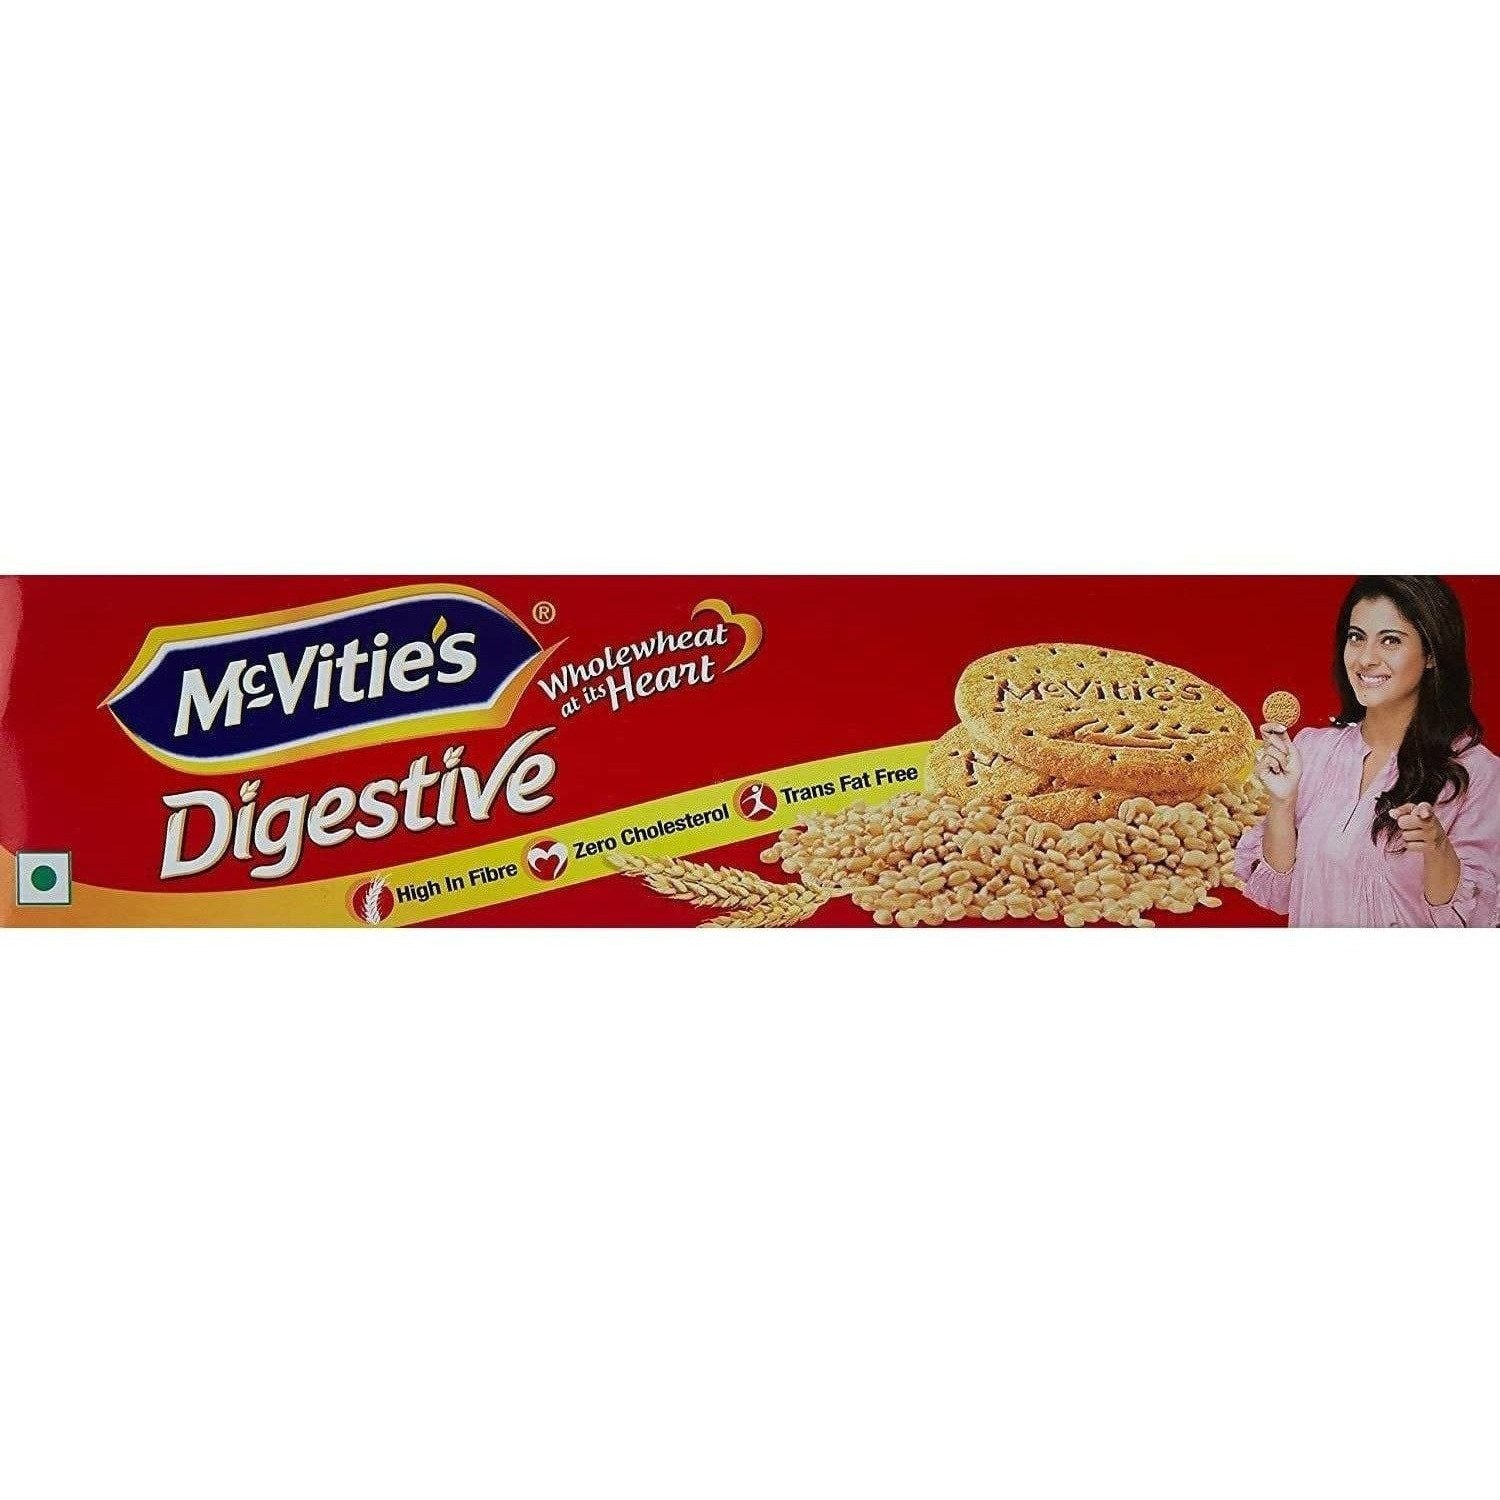 McVities Digestive Biscuits